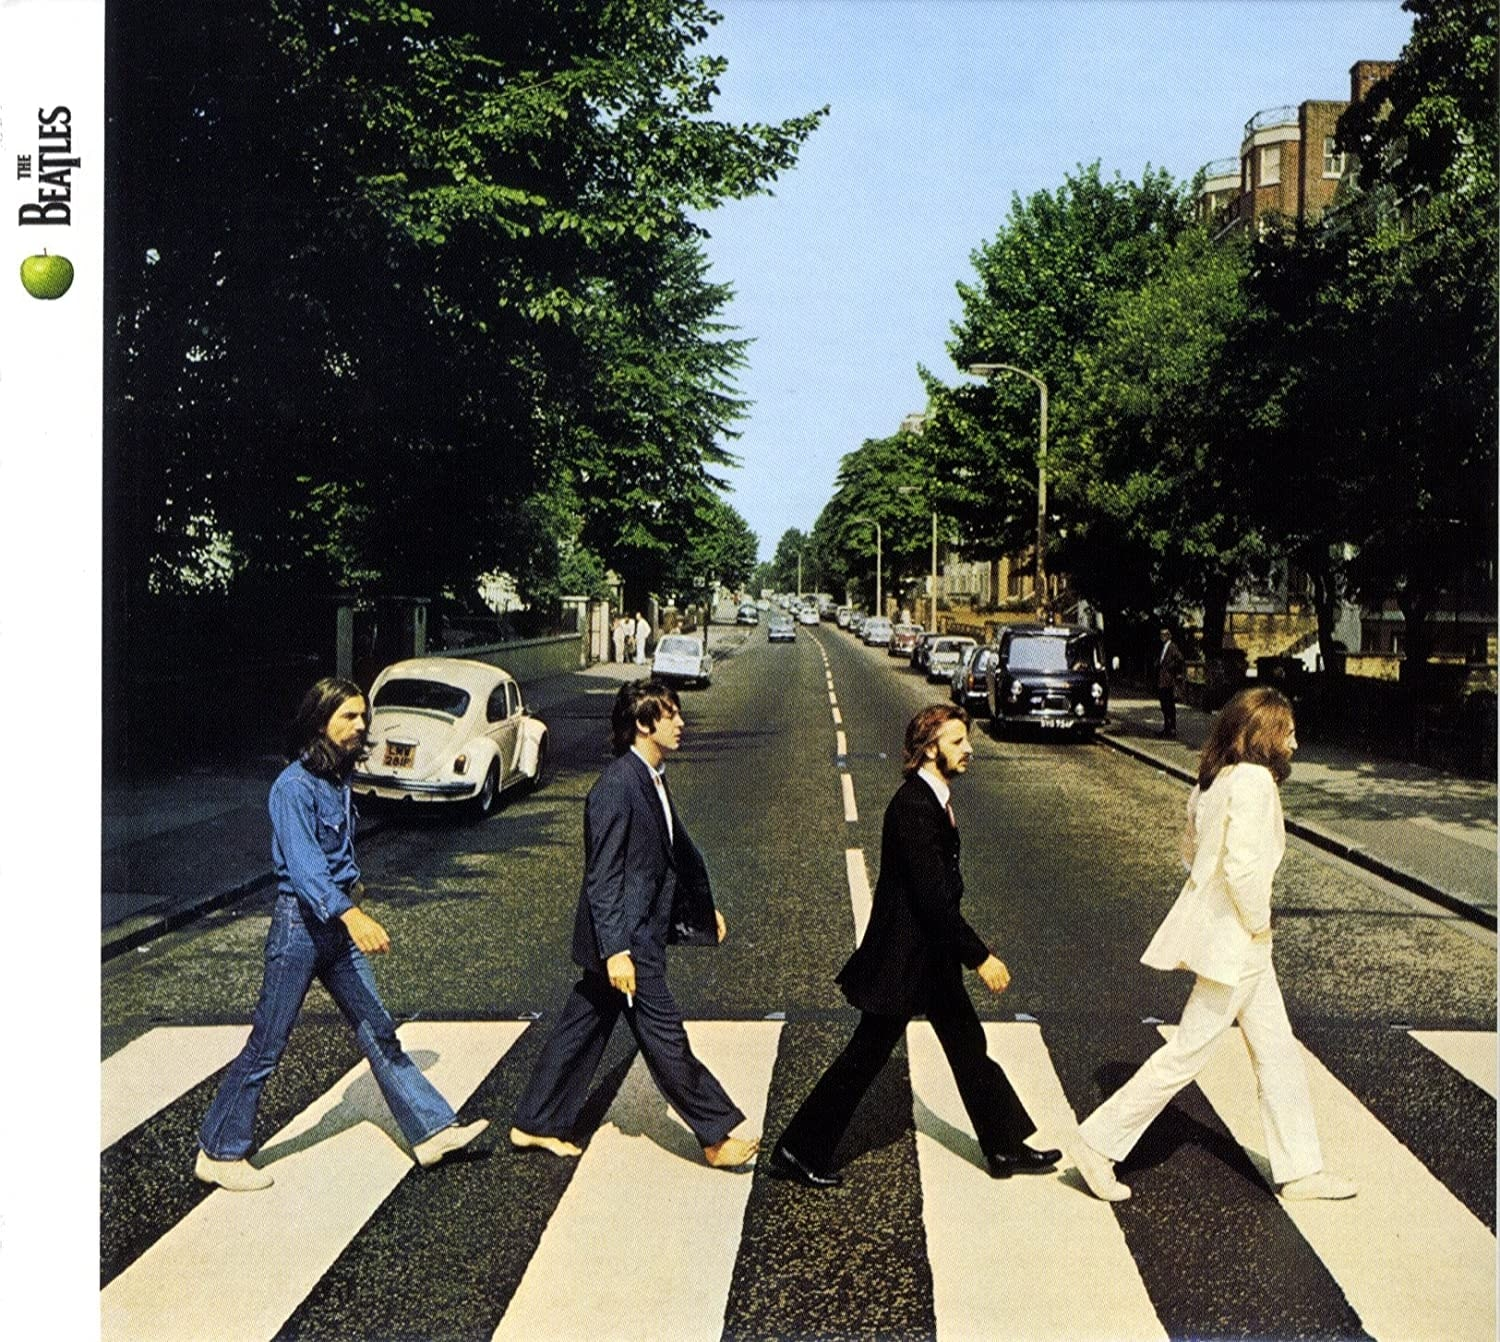 Capa do álbum 'Abbey Road' [Créditos: Apple Records]